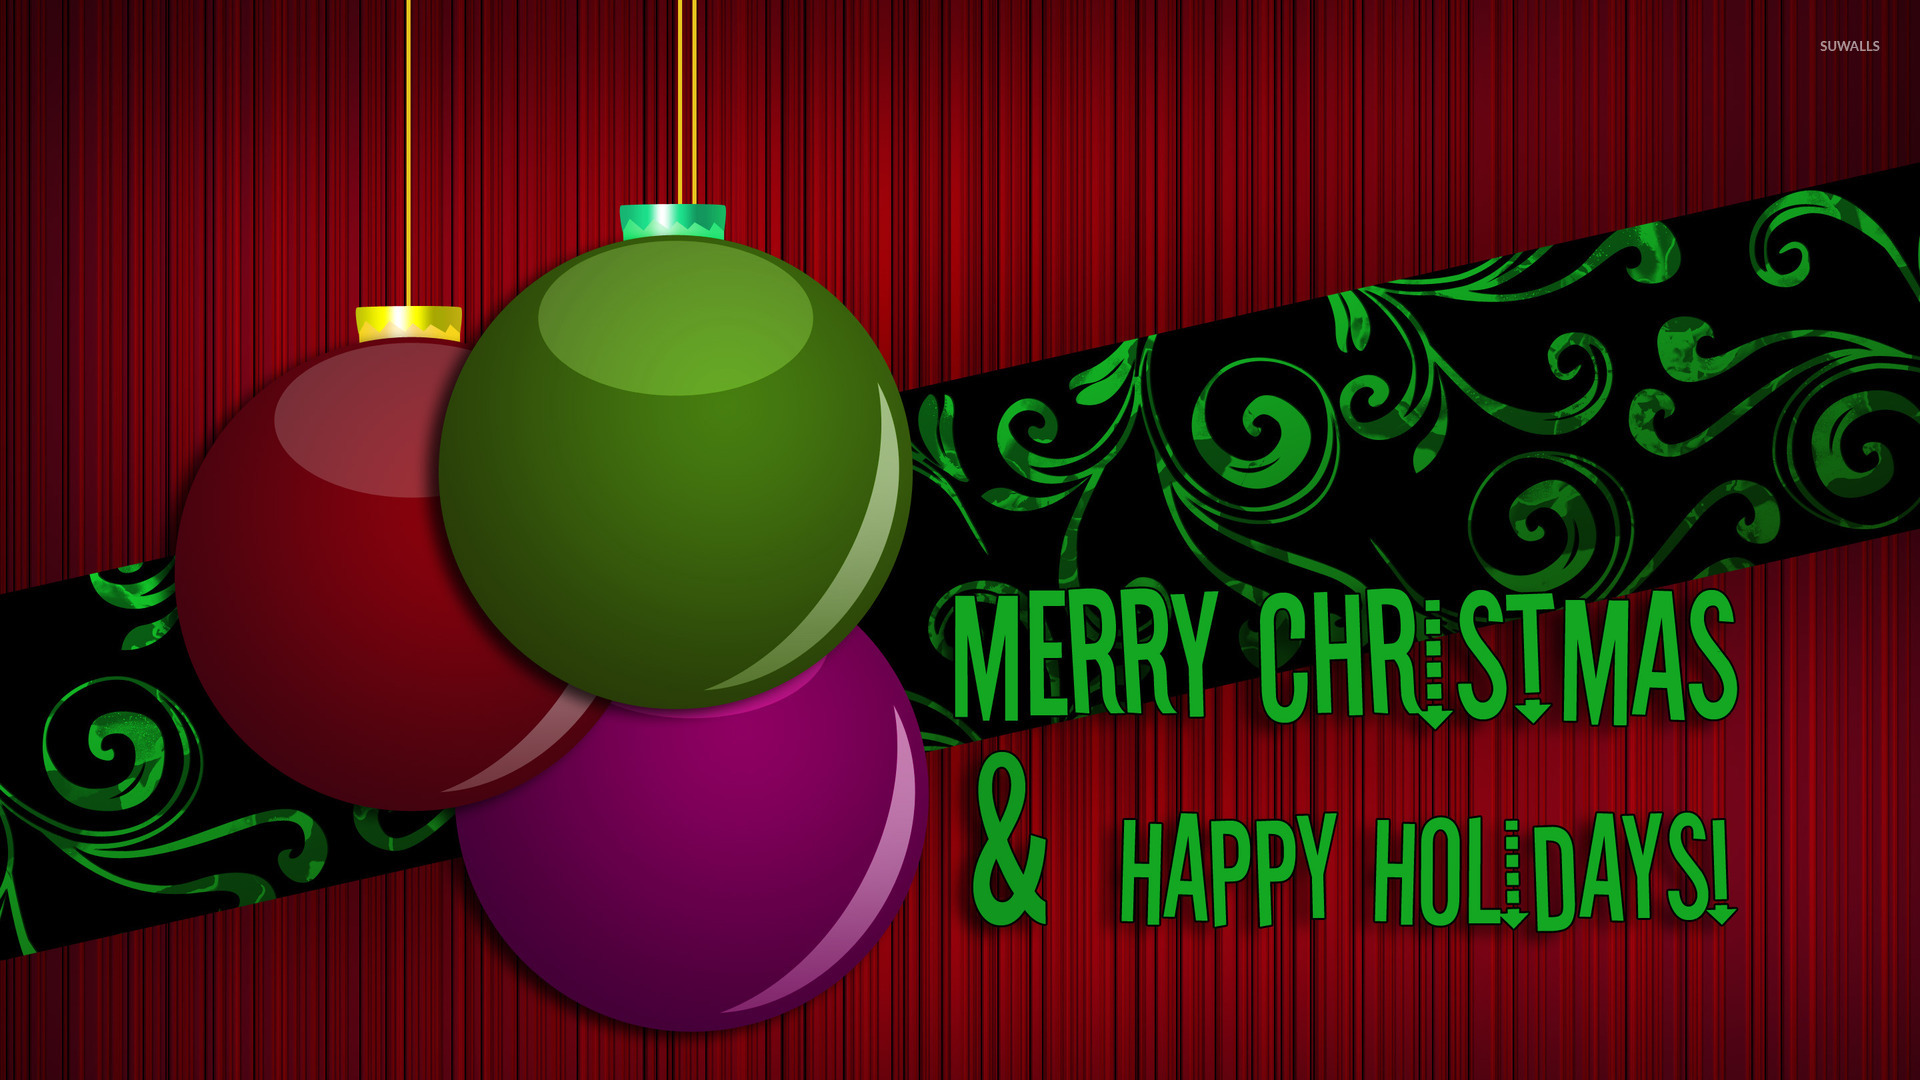 merry christmas wallpapers happy holidays